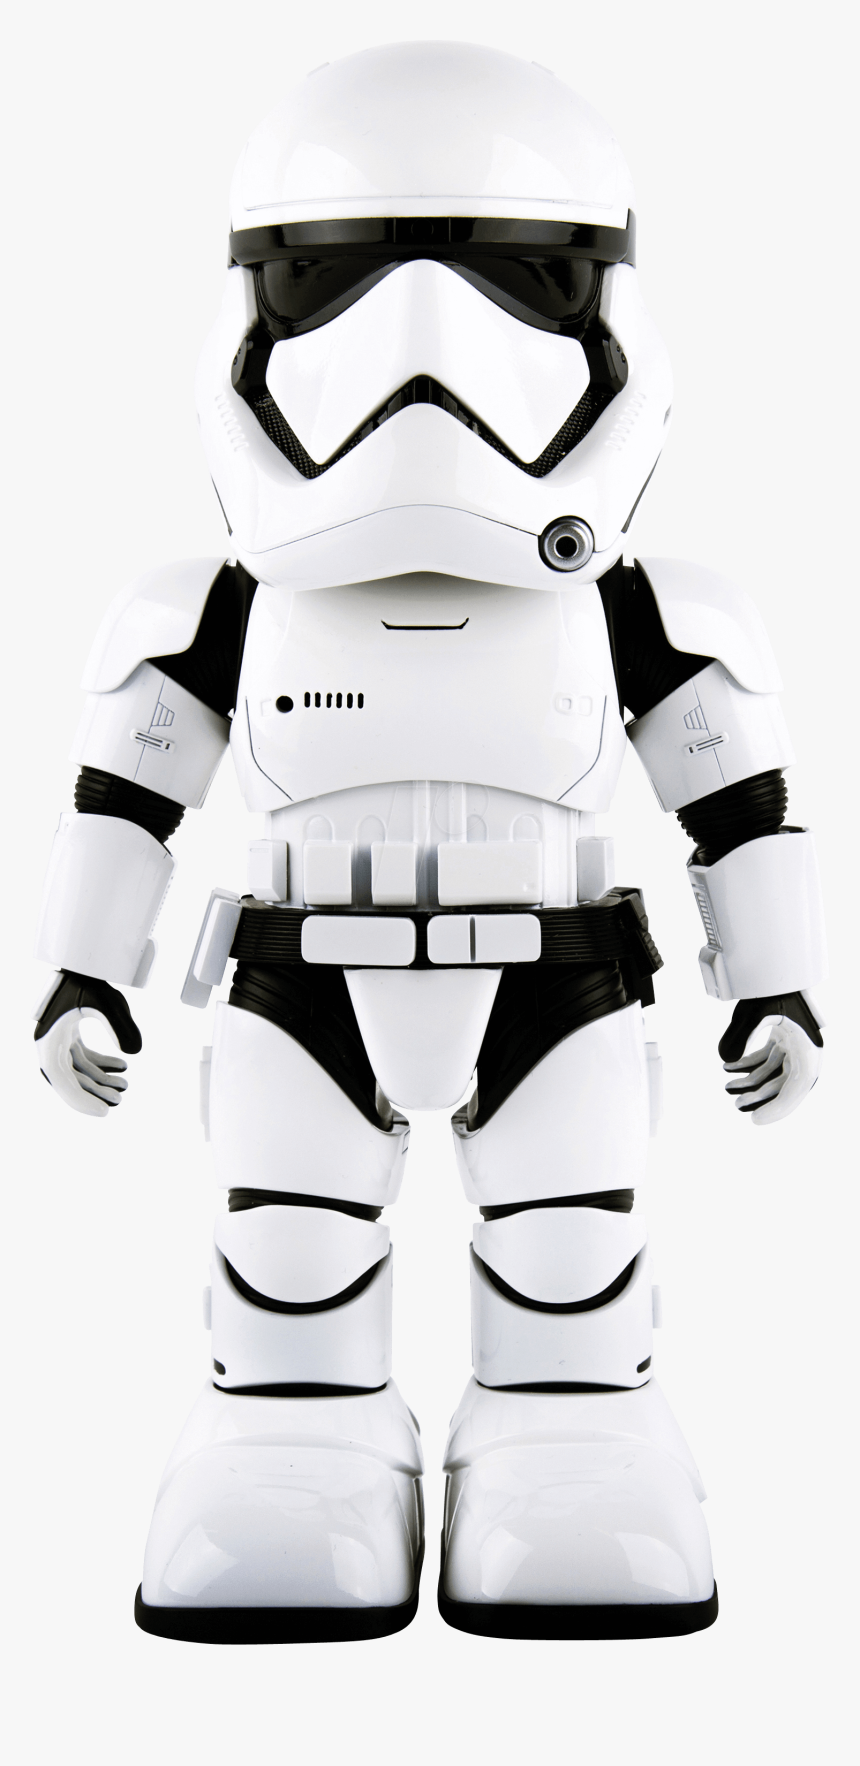 Star Wars Stormtrooper By Ubtech, HD Png Download, Free Download